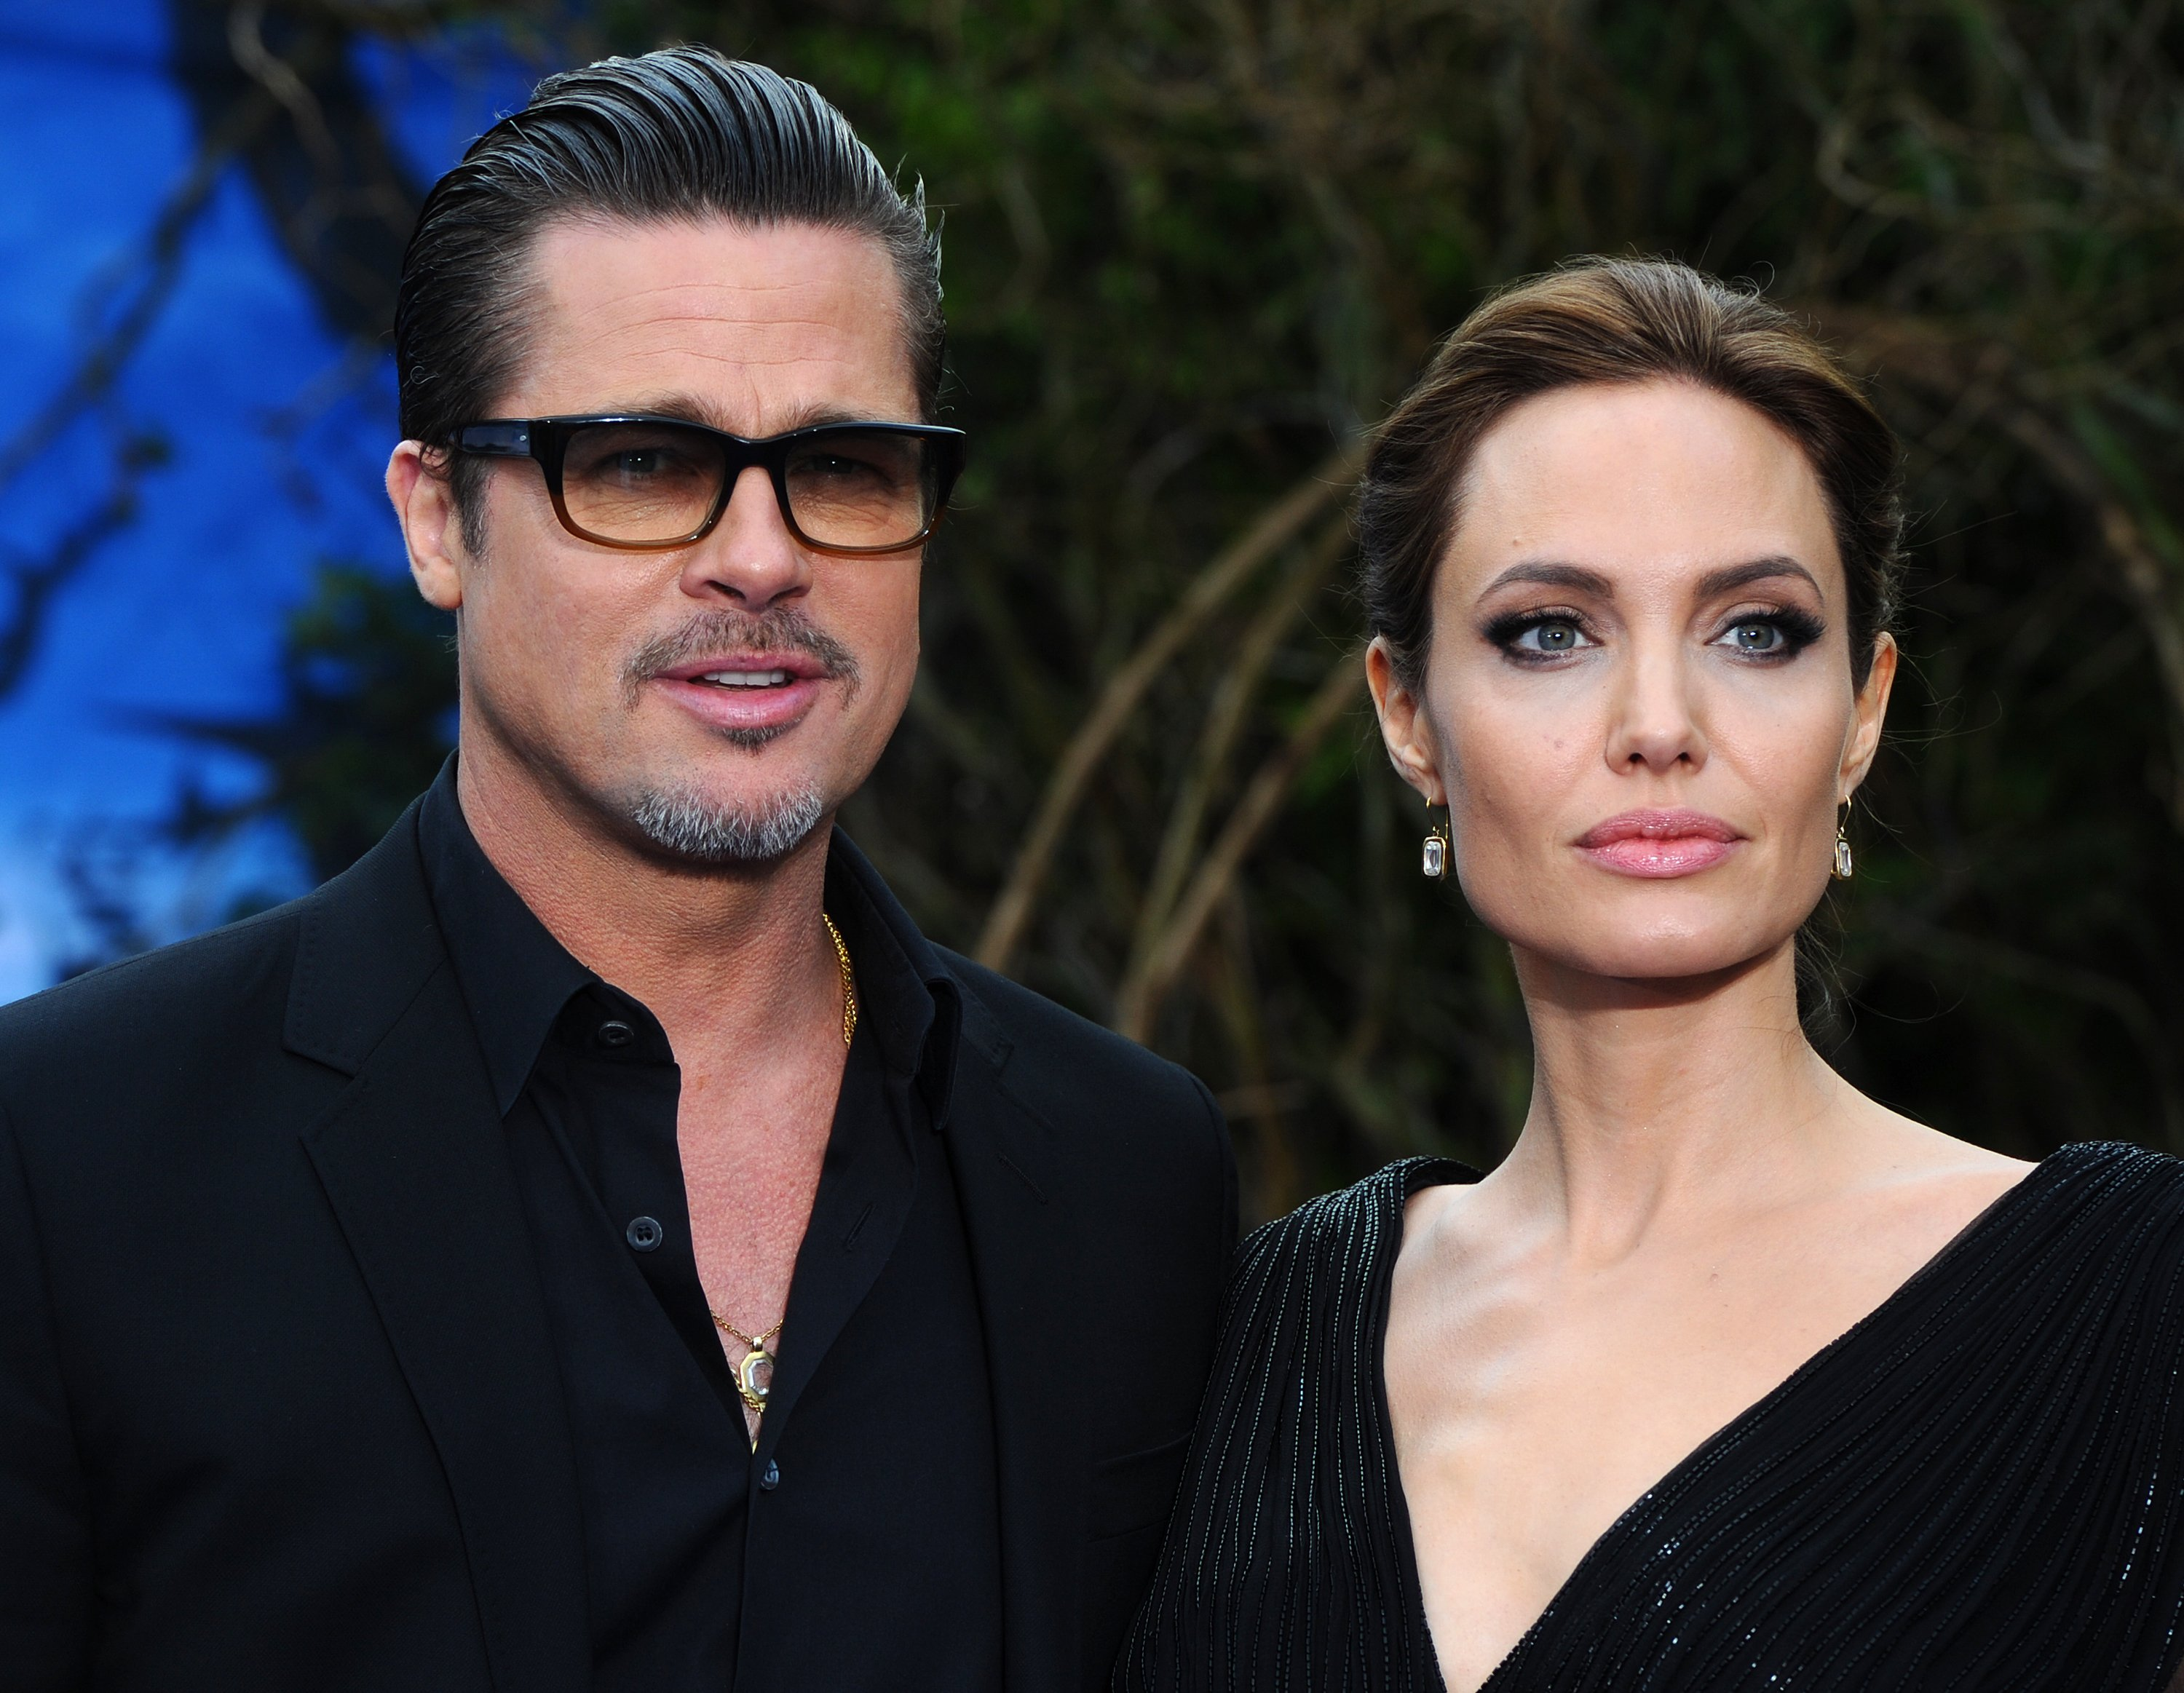 """Brad Pitt and Angelina Jolie attend a private reception as costumes and props from Disney's """"Maleficent"""" are exhibited in support of Great Ormond Street Hospital at Kensington Palace on May 8, 2014 in London, England. 